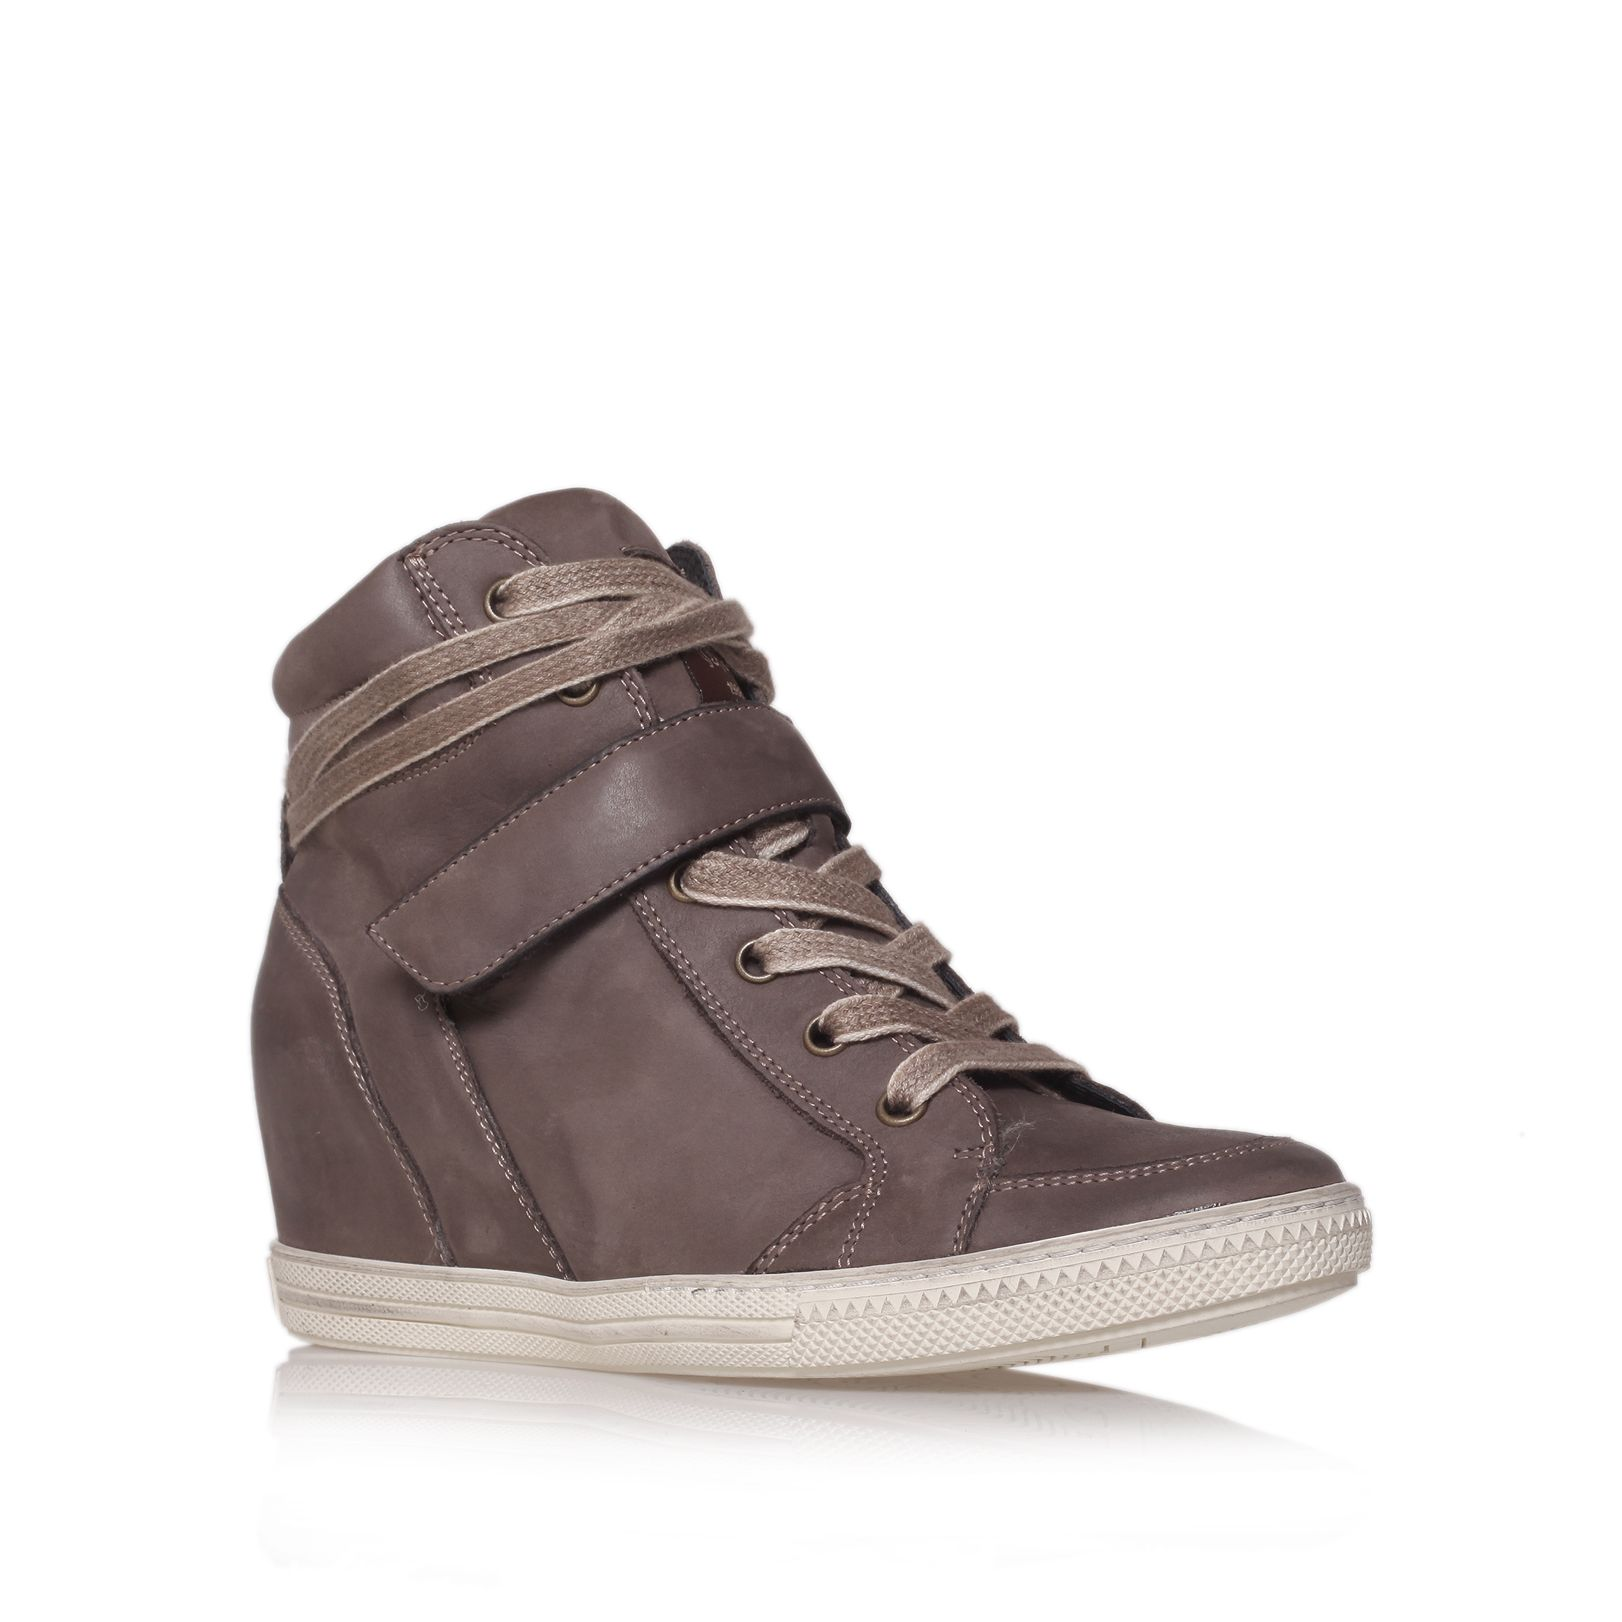 paul green penelope hitop wedge trainer shoes in brown